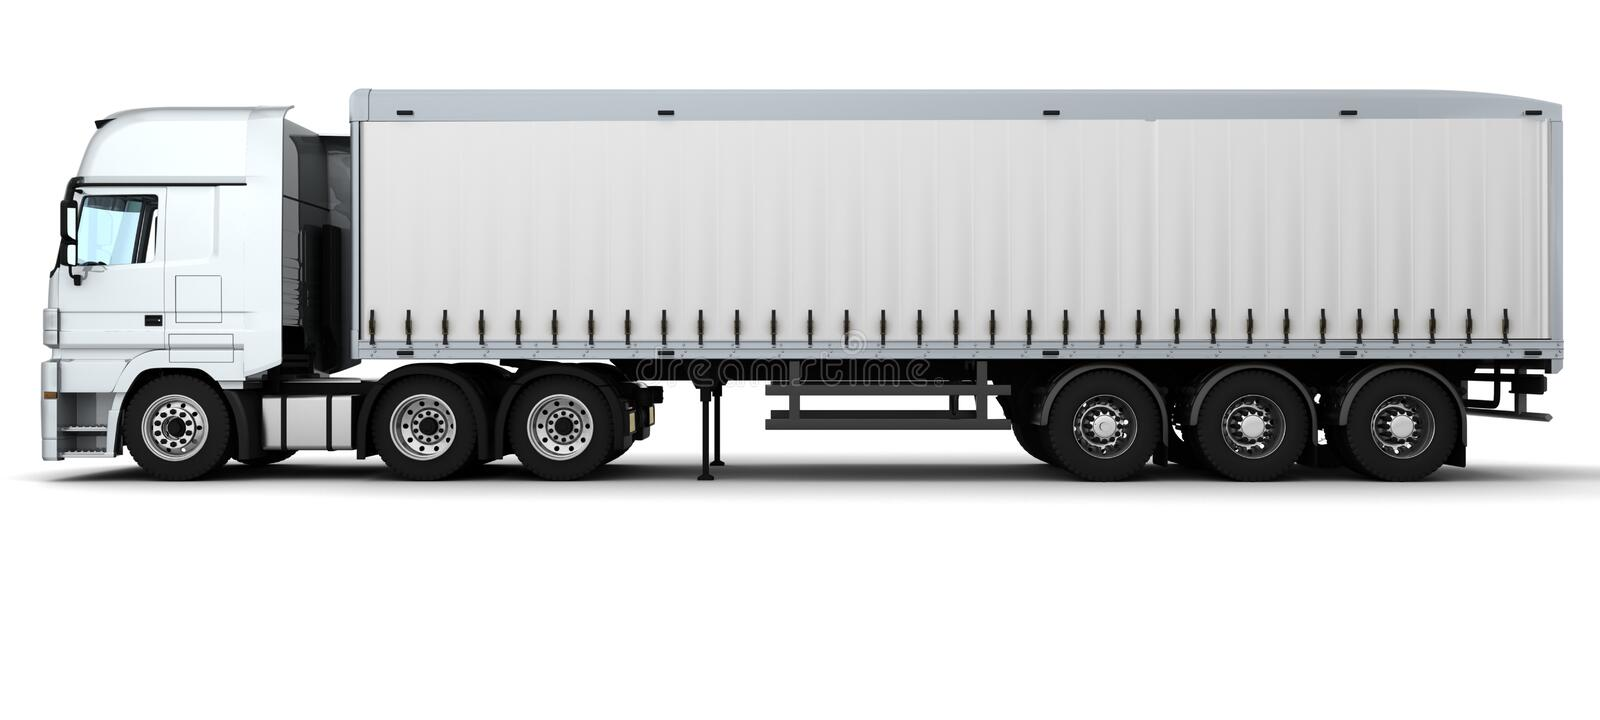 Cargo Delivery Vehicle stock illustration